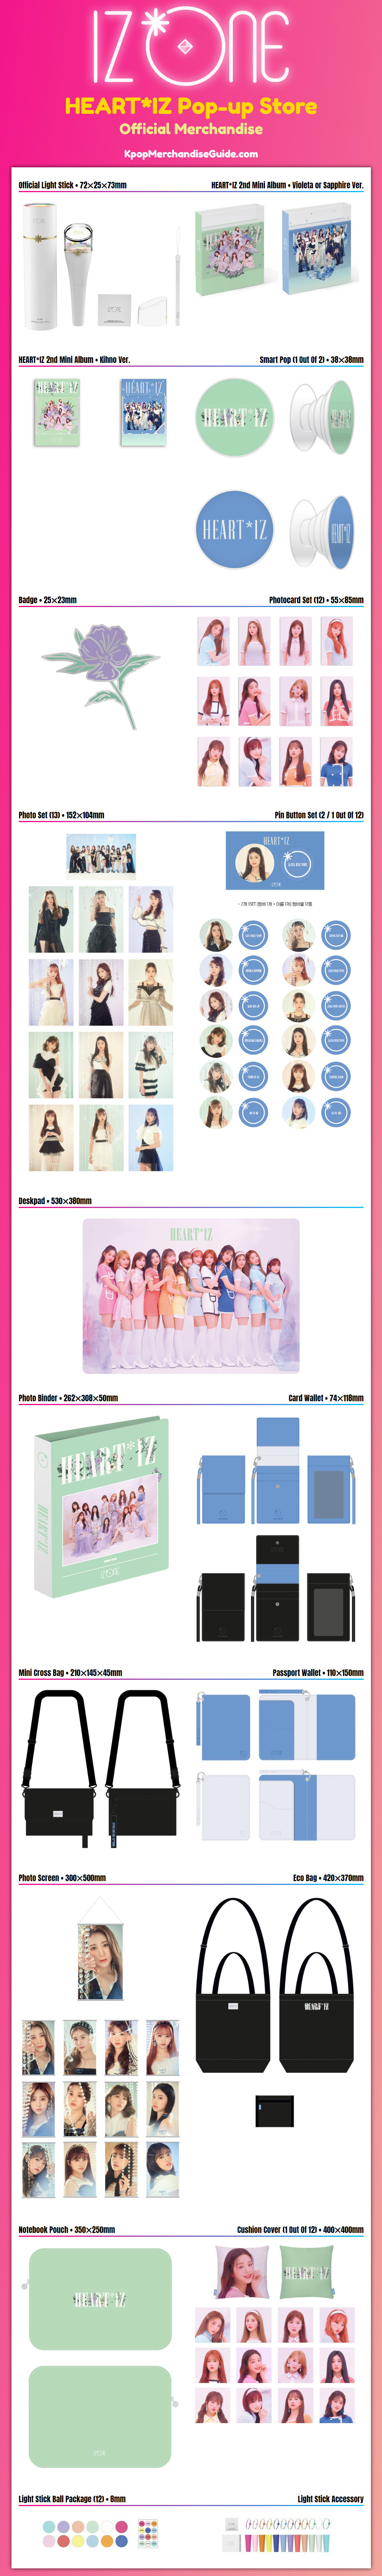 IZ*ONE (Izone) Merchandise